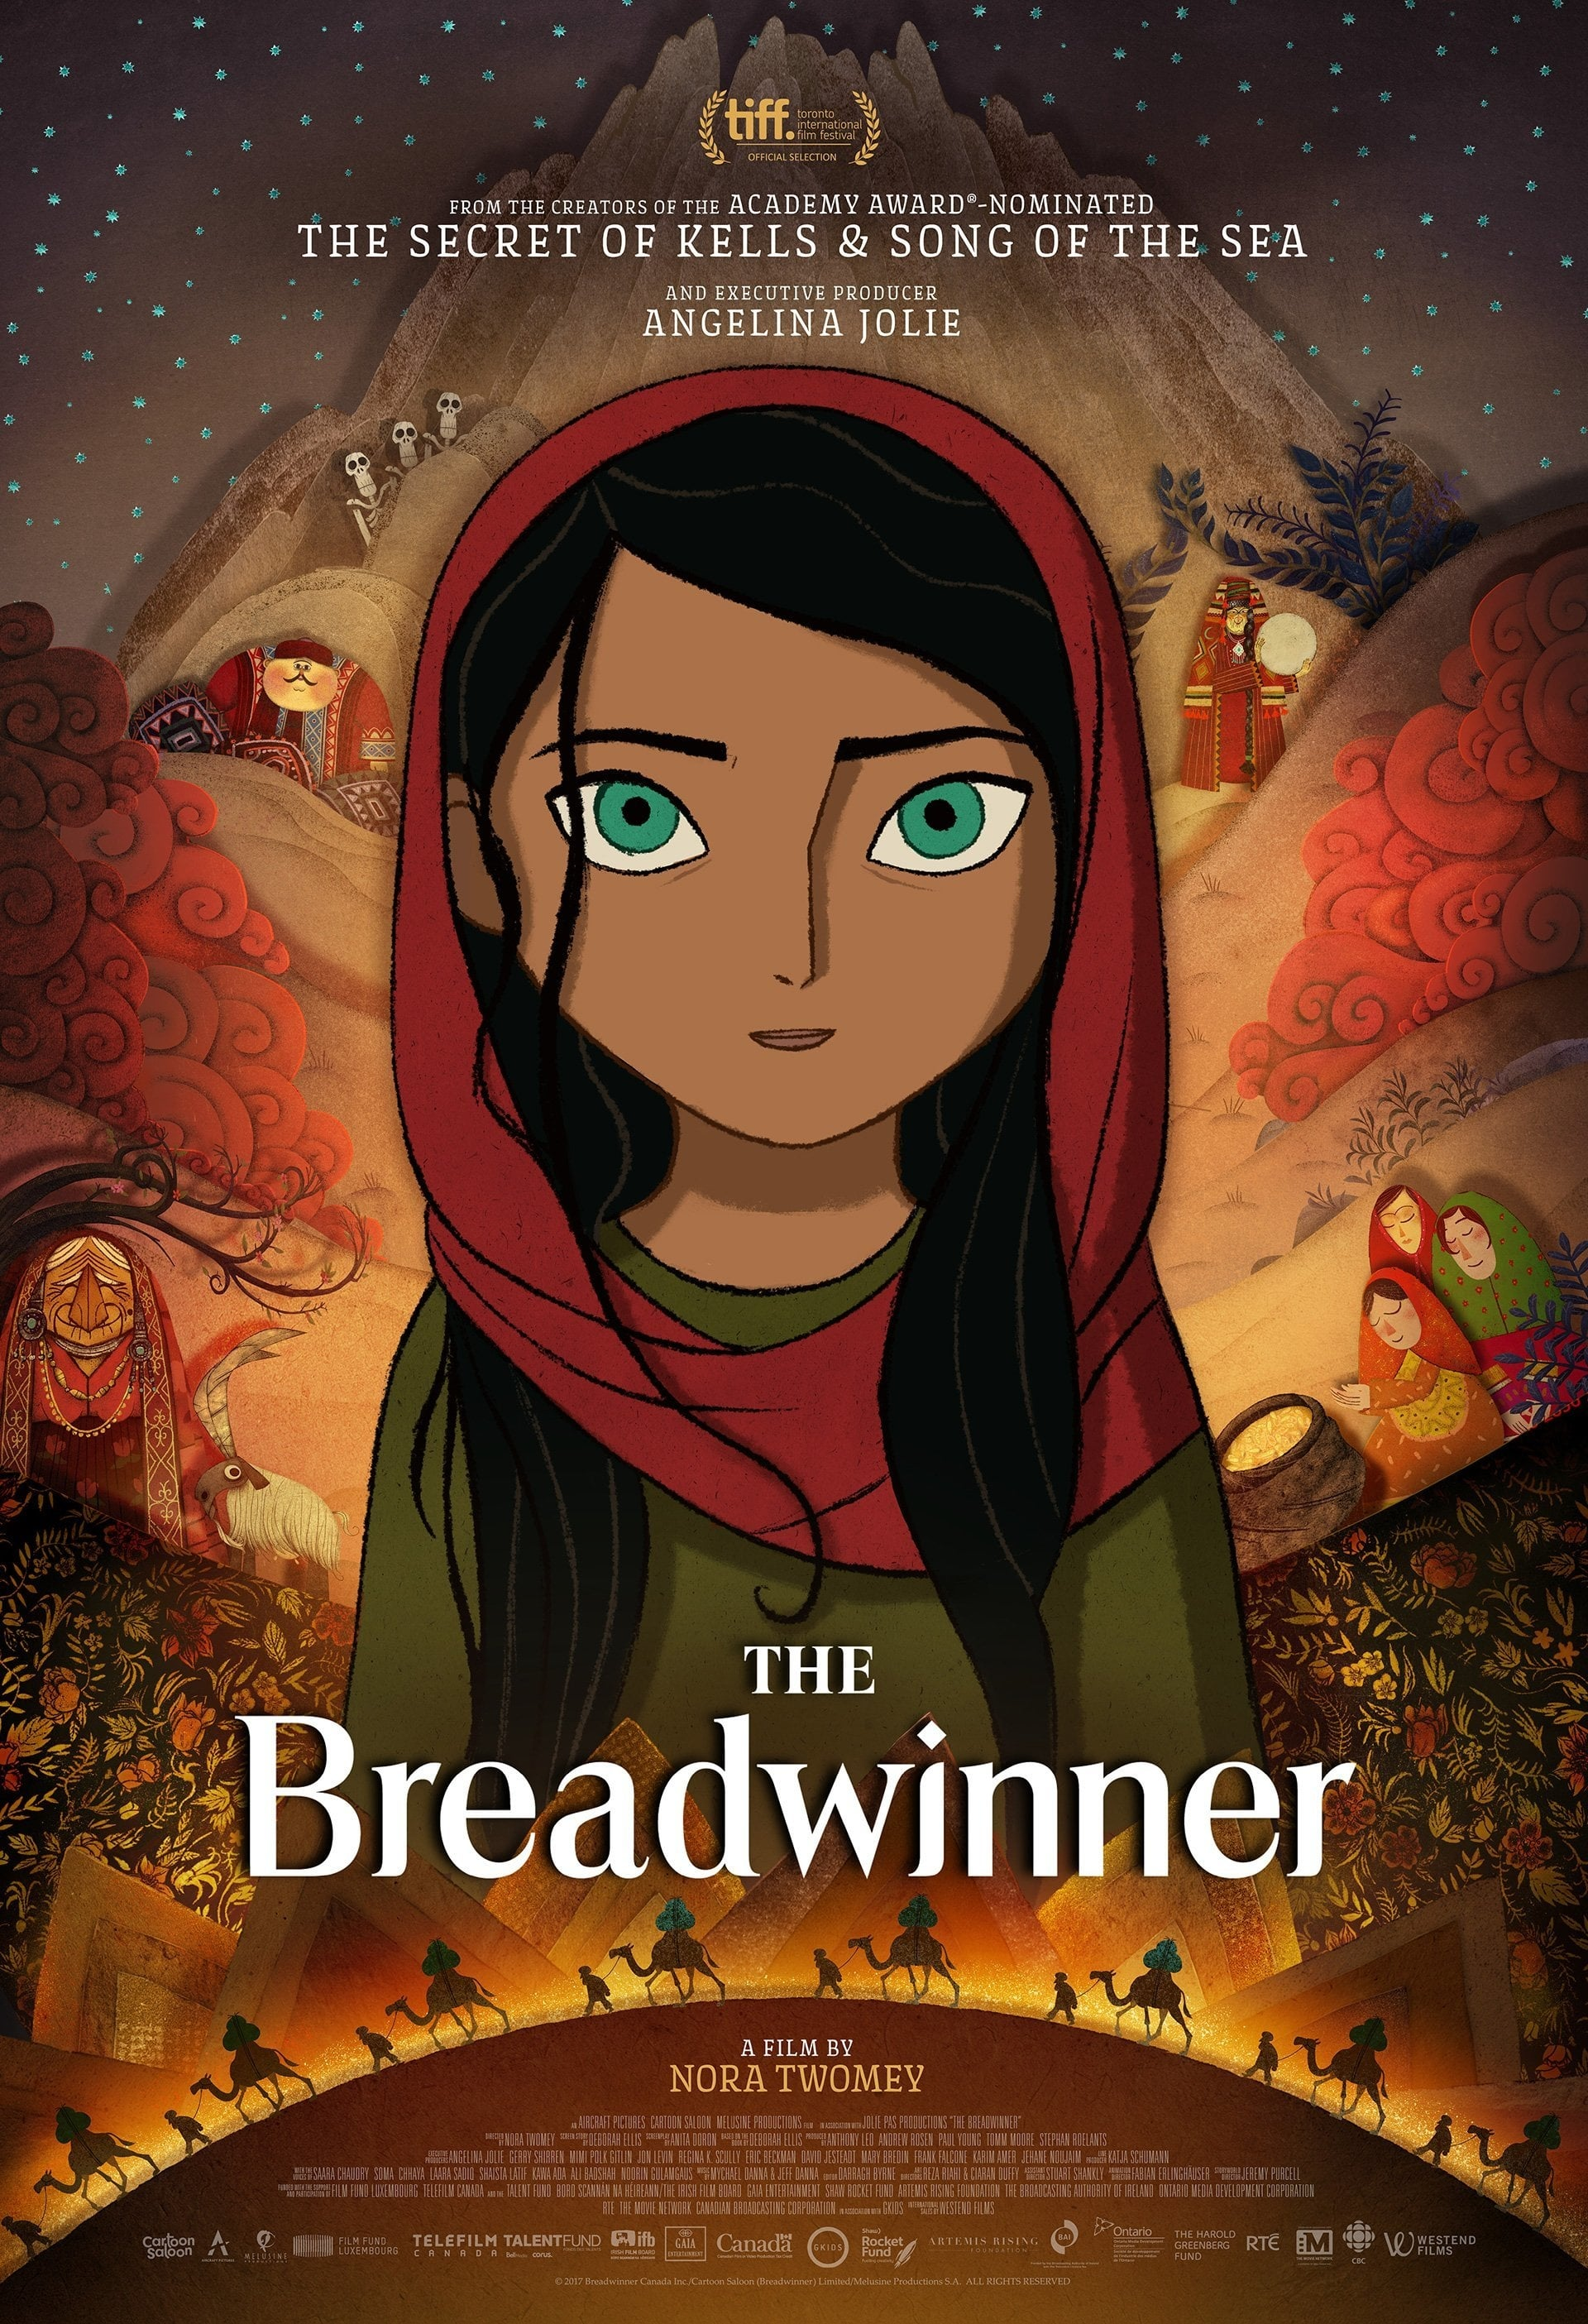 Assistir The Breadwinner Legendado Online Legendado 1080p